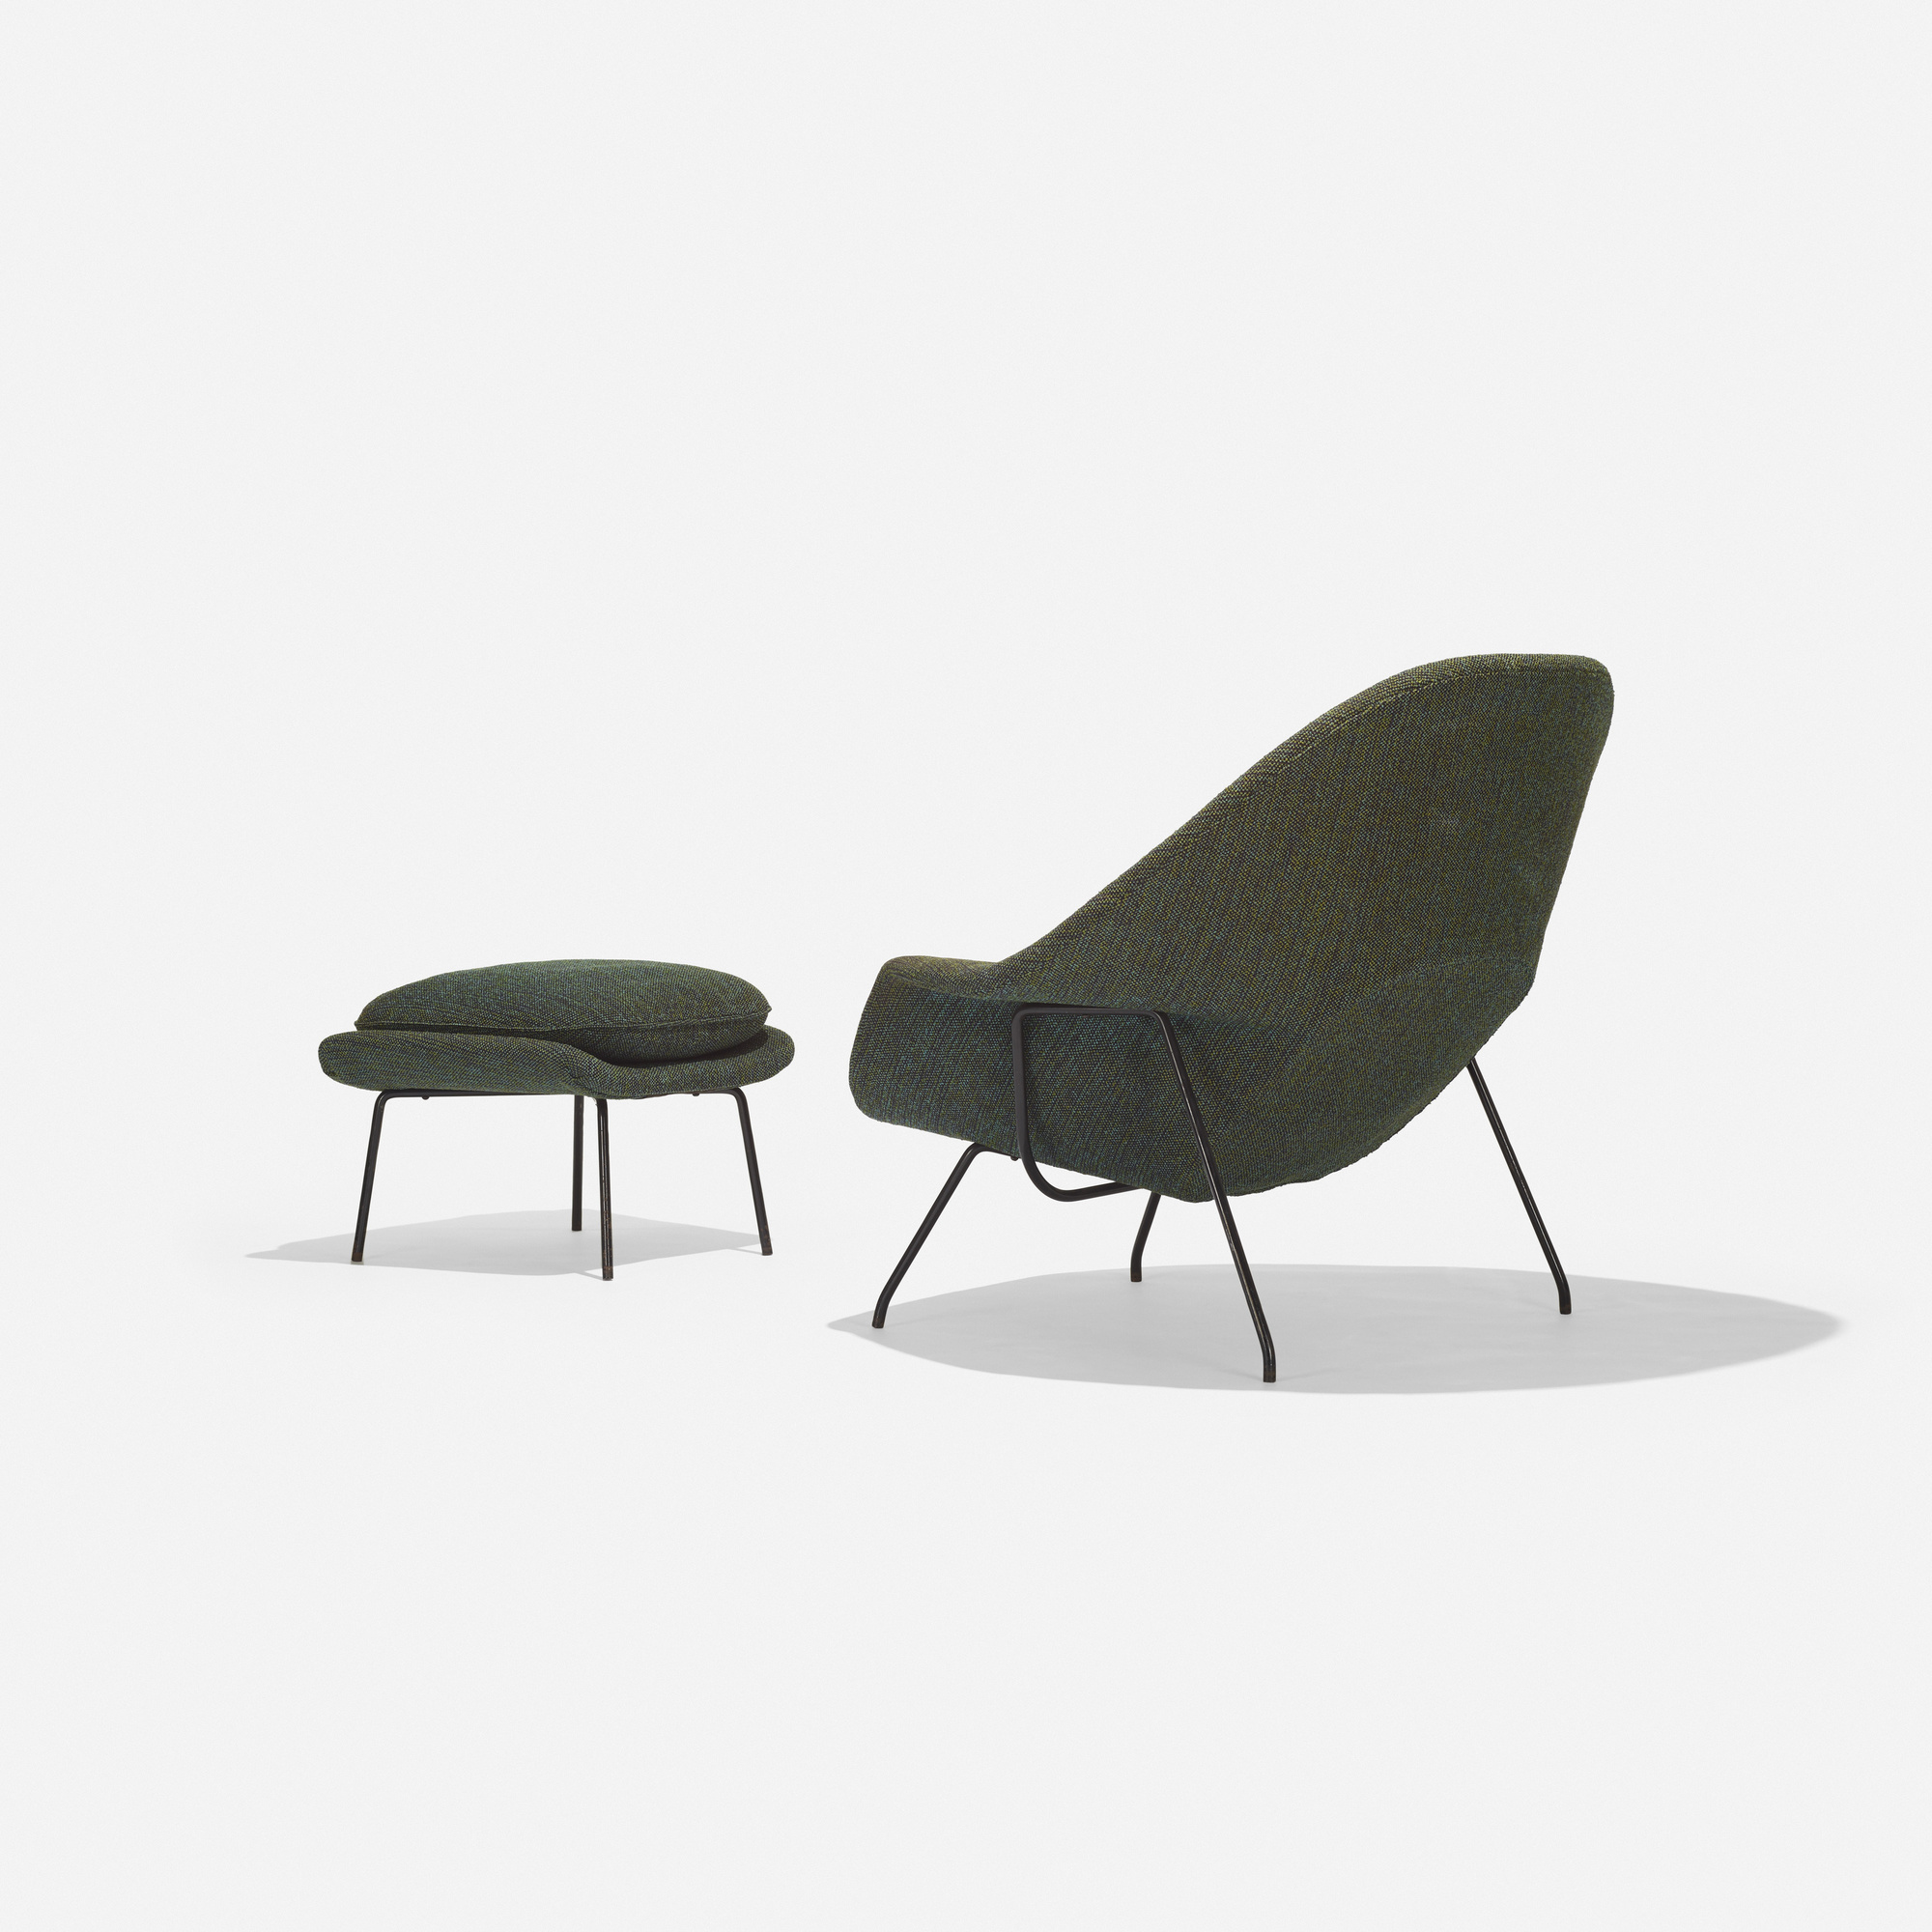 229 eero saarinen womb chair and ottoman 3 of 3